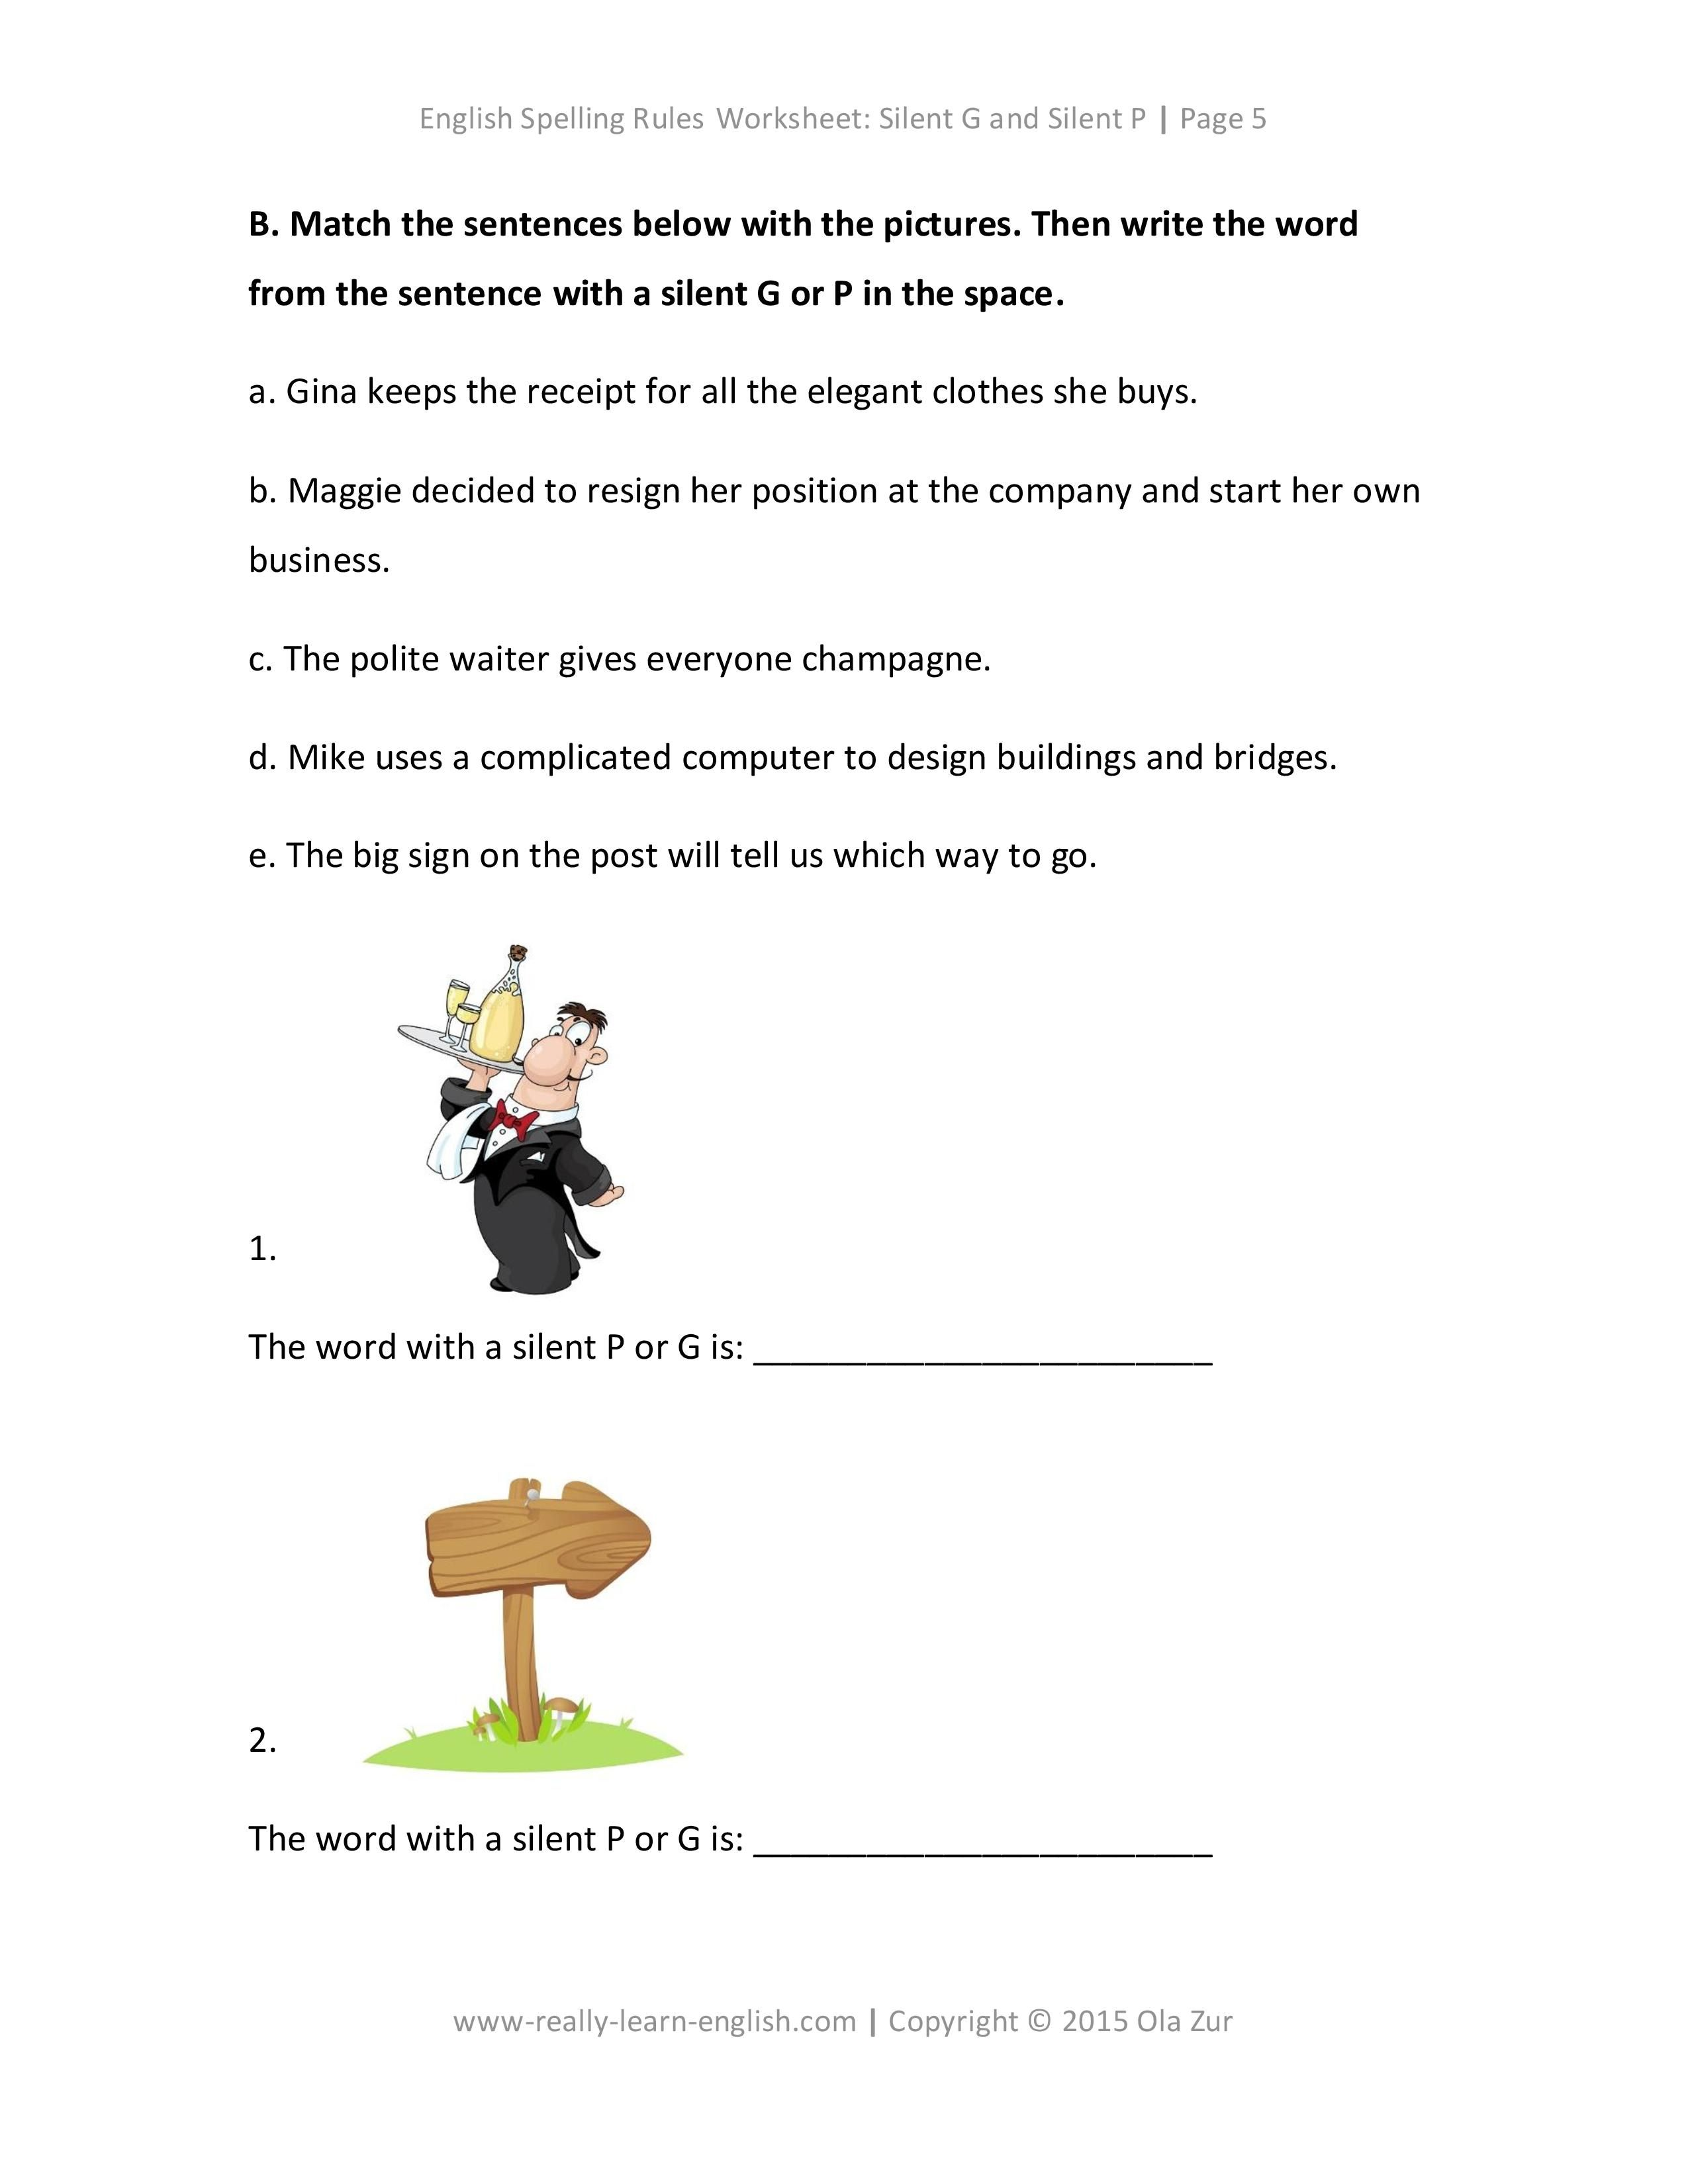 free printable worksheets to practice english spelling rules for esl students pinterest. Black Bedroom Furniture Sets. Home Design Ideas